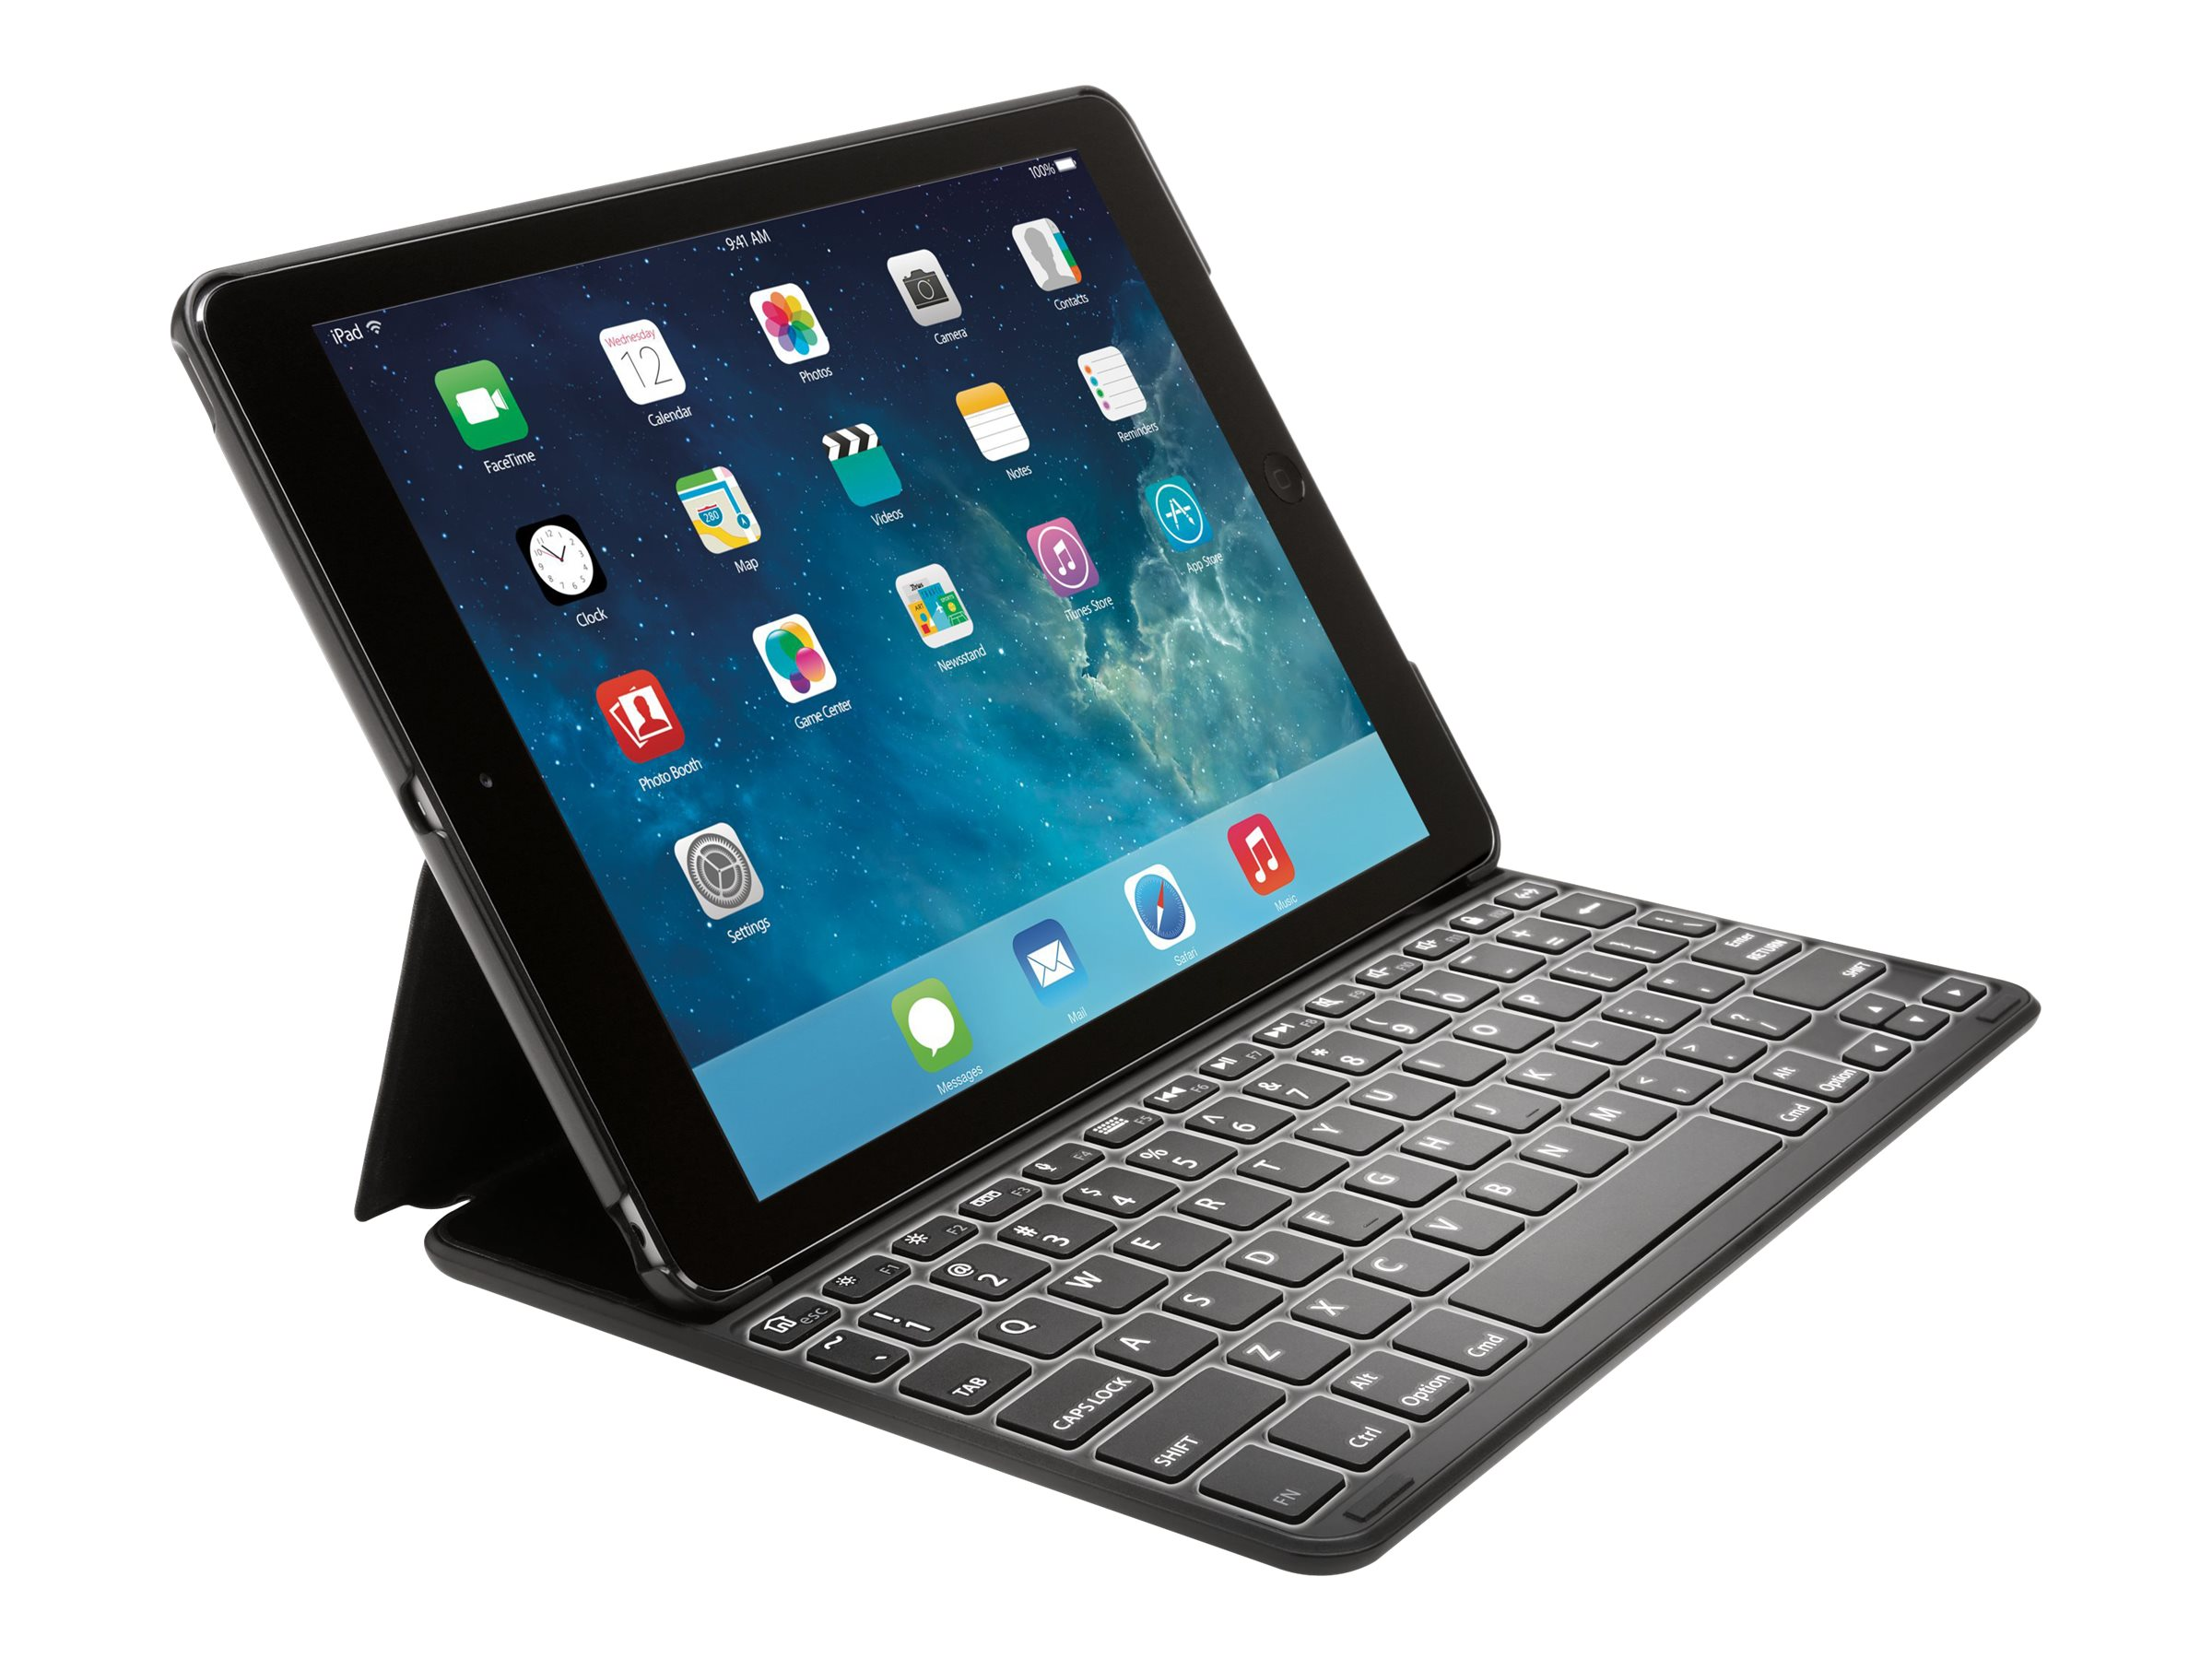 Kensington KeyFolio Thin X2 Plus for iPad Air 2, Black, K97391US, 18001466, Keyboards & Keypads